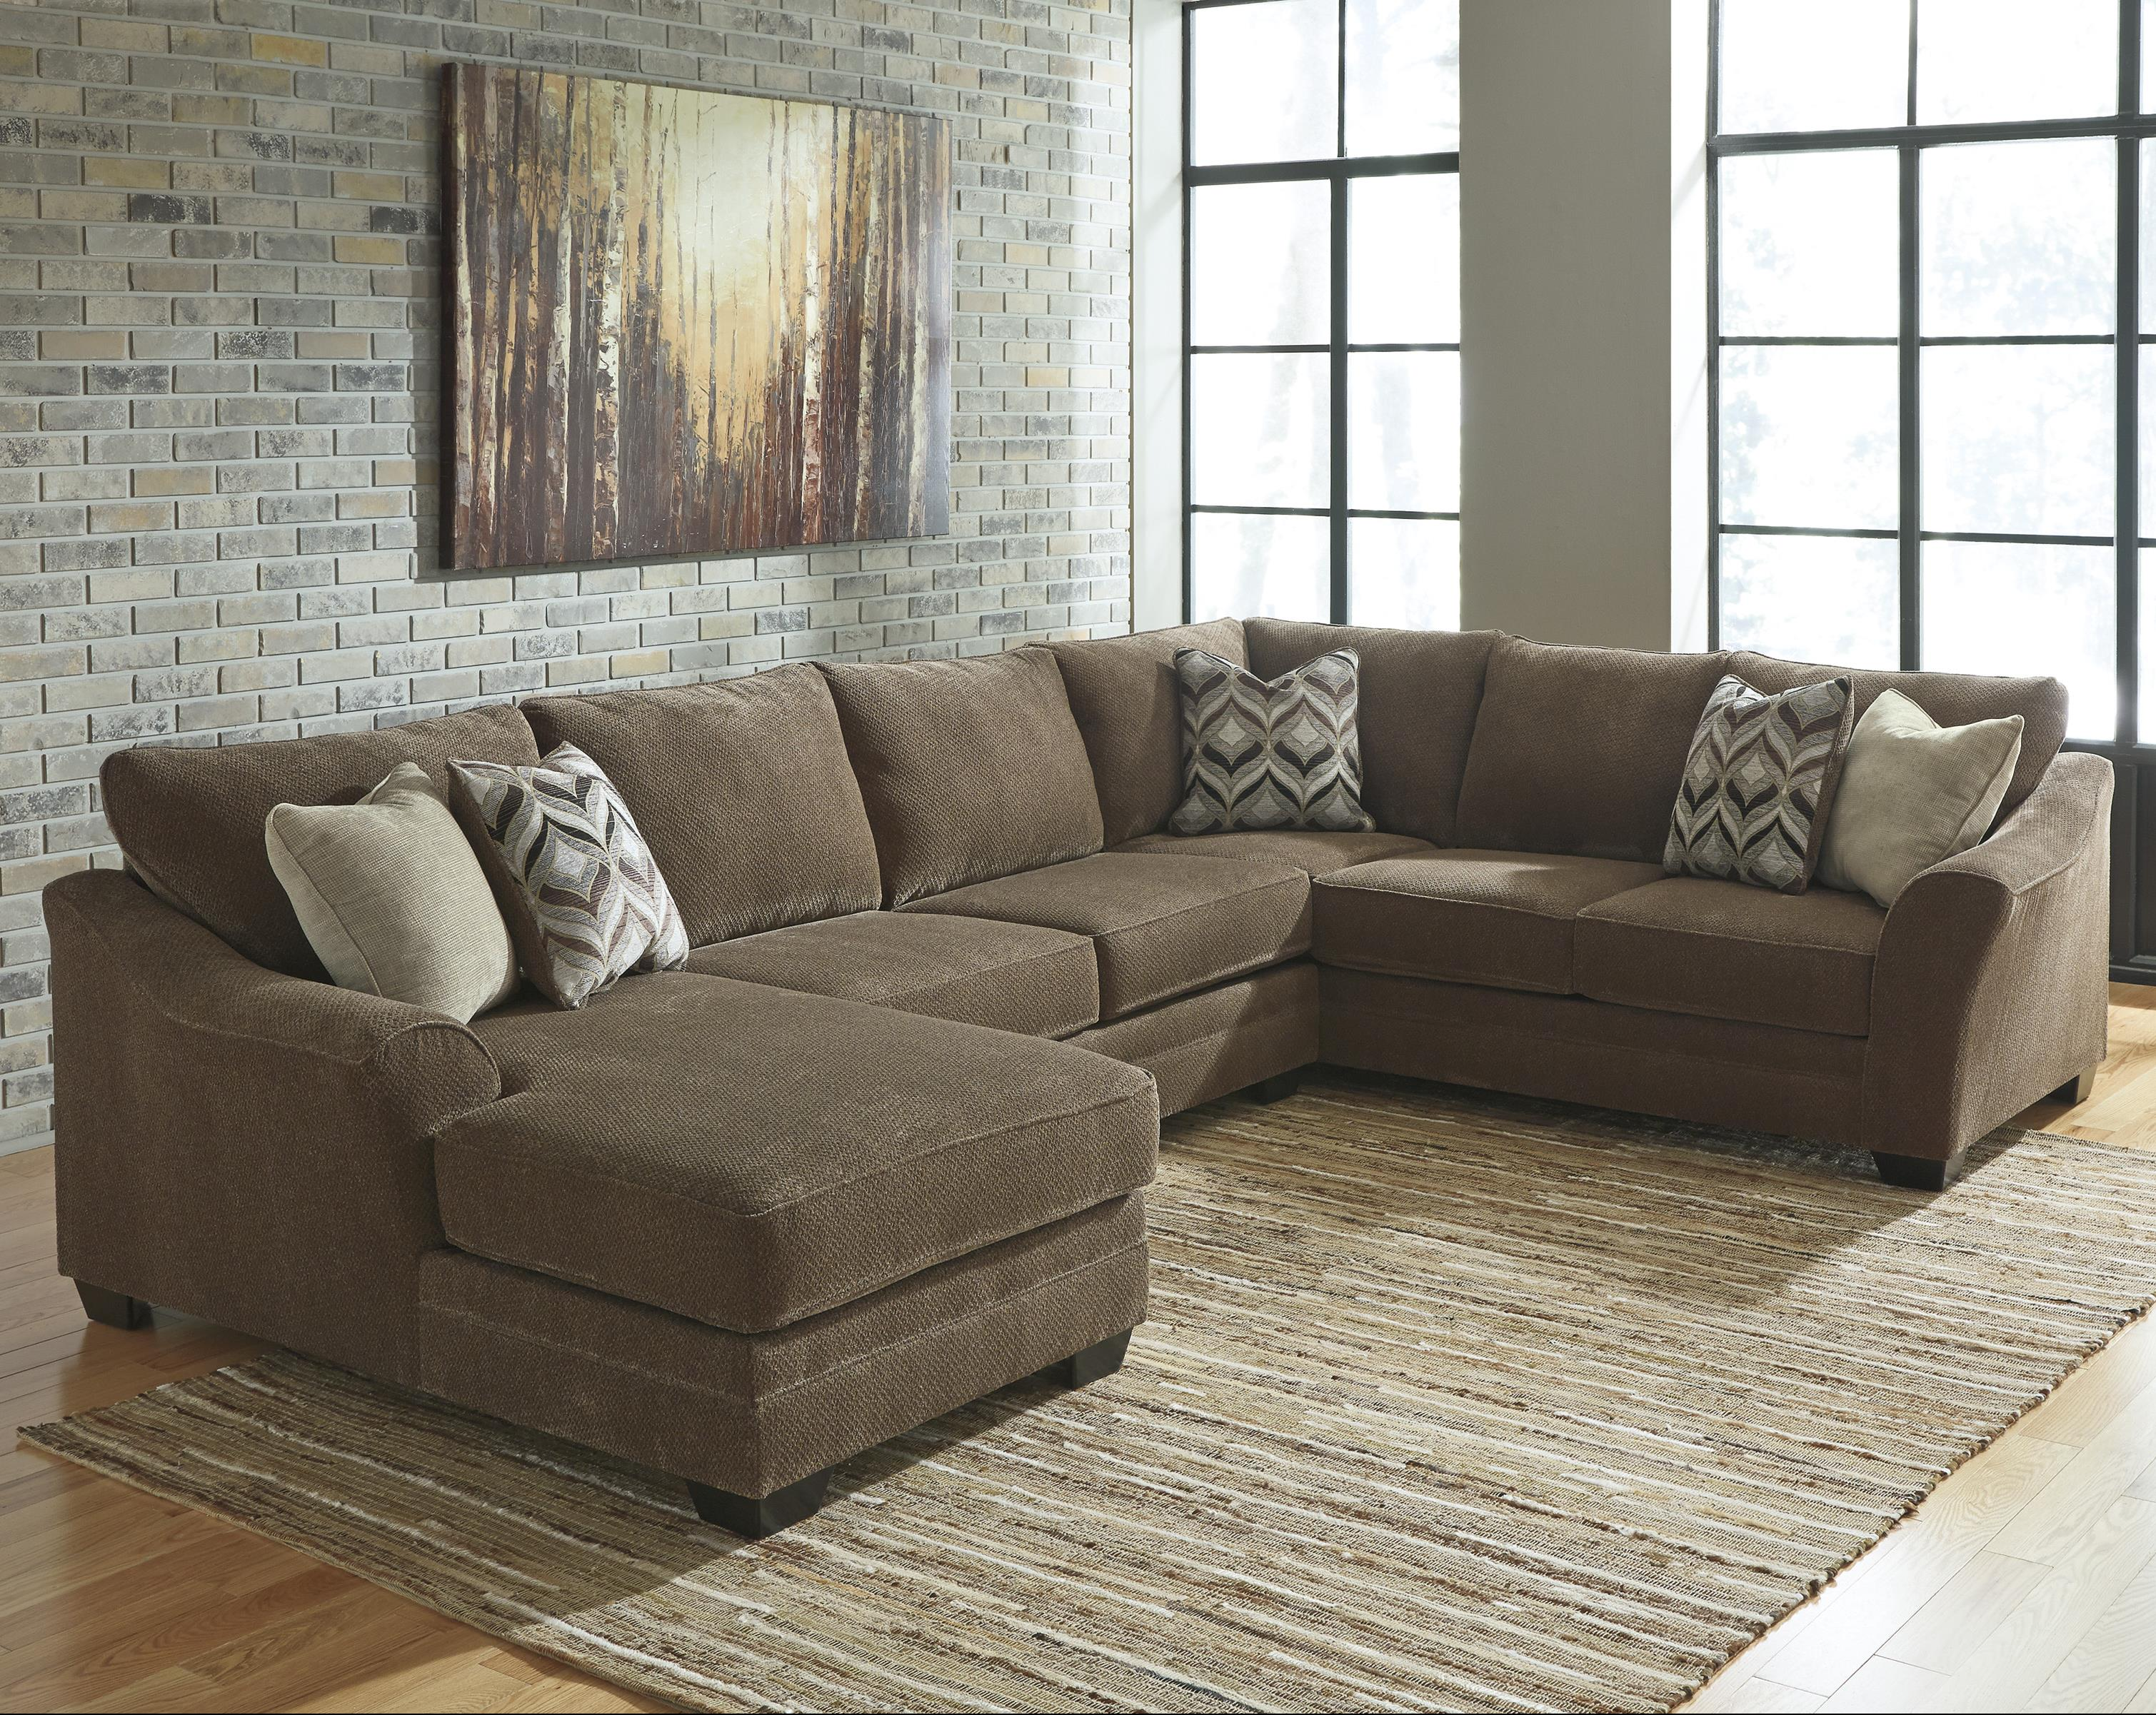 3piece sectional with left chaise